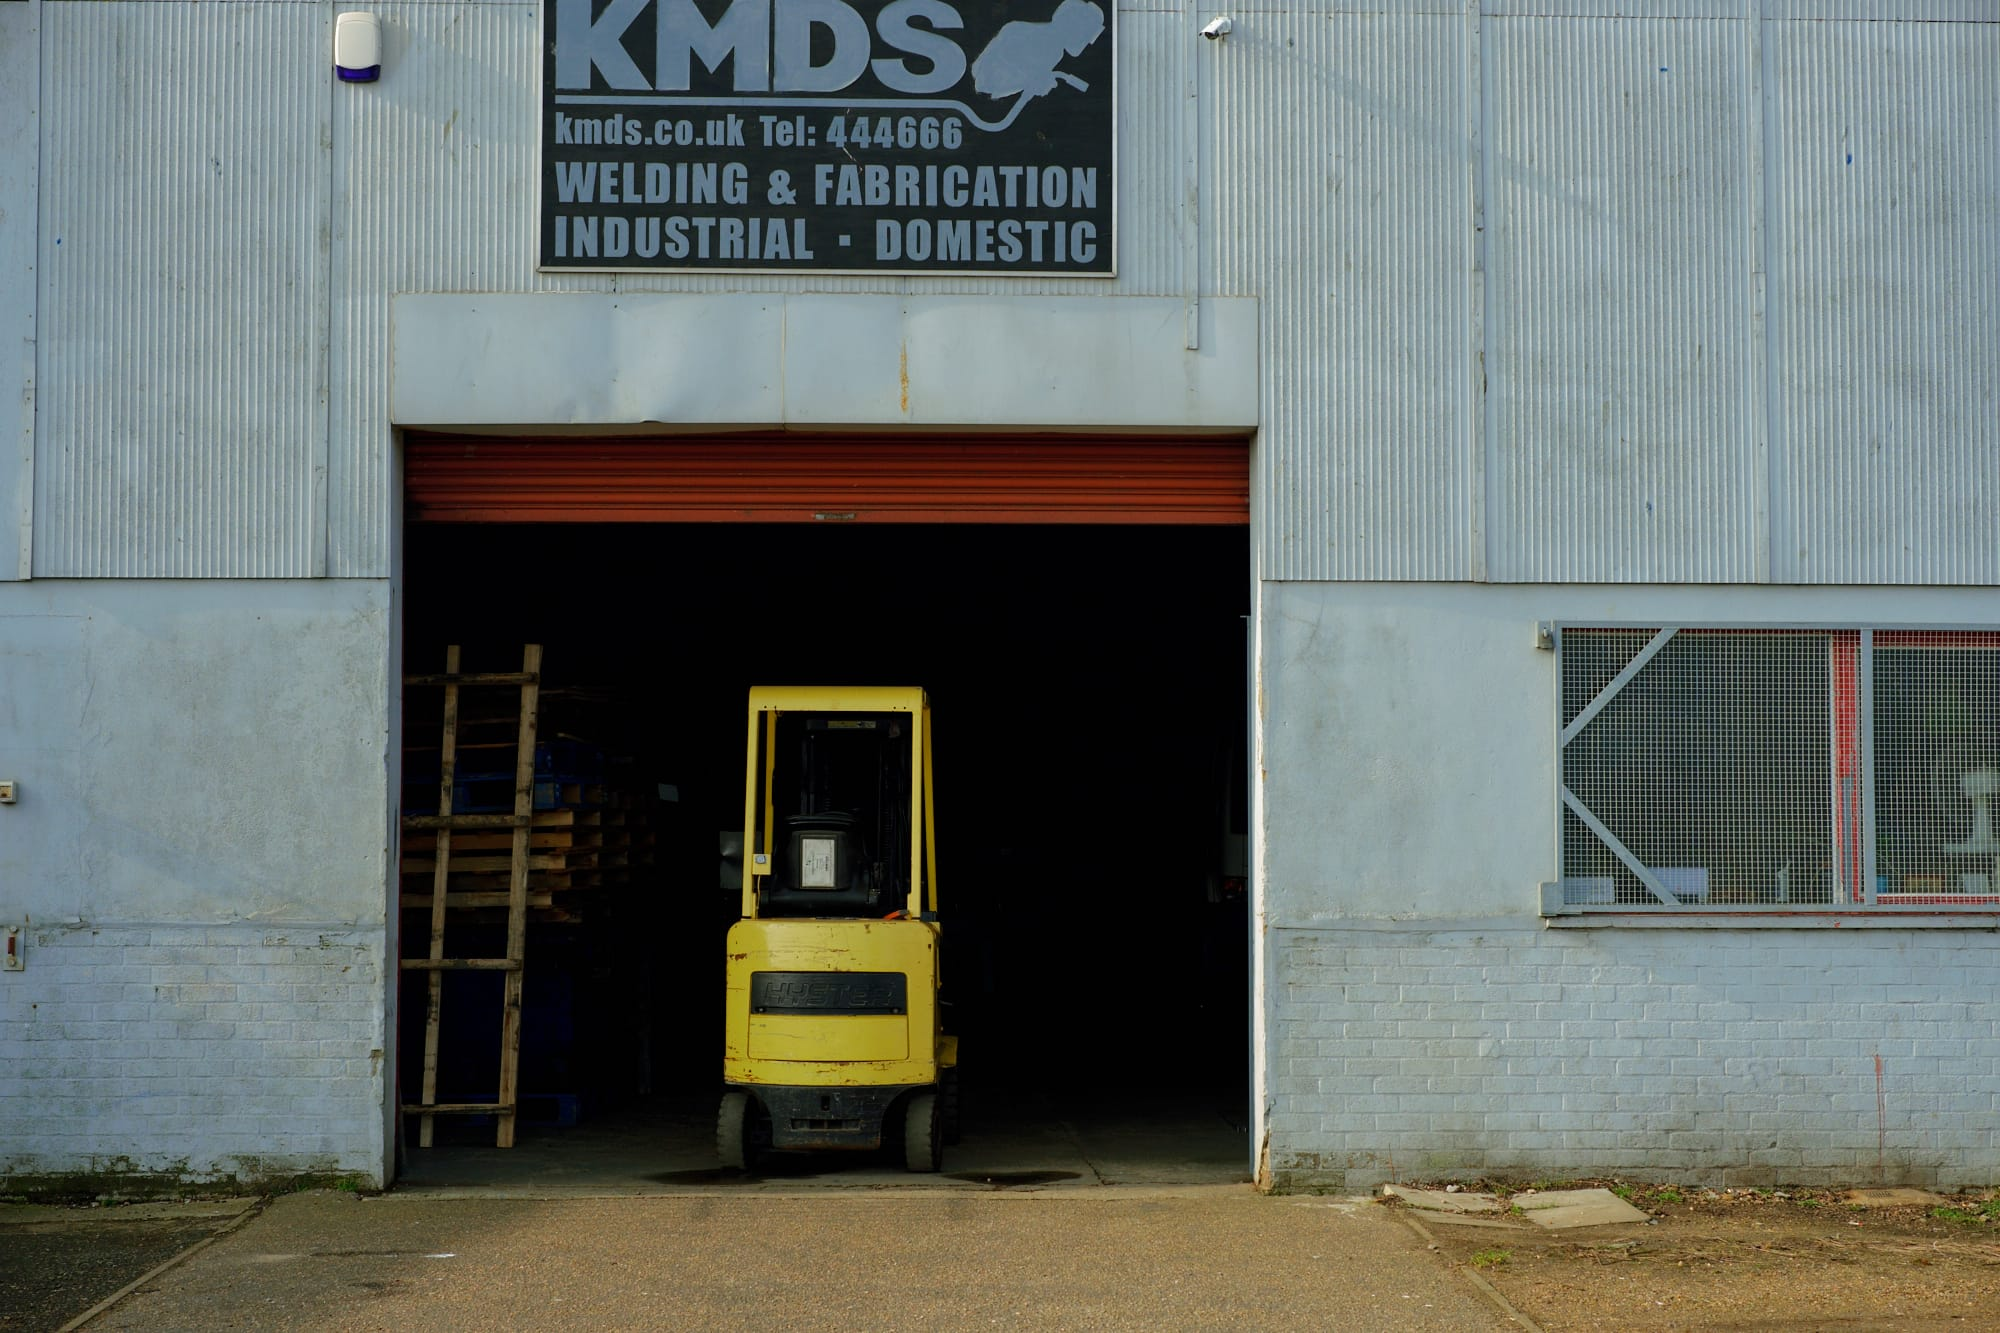 forklift truck in the entrance to KMDS